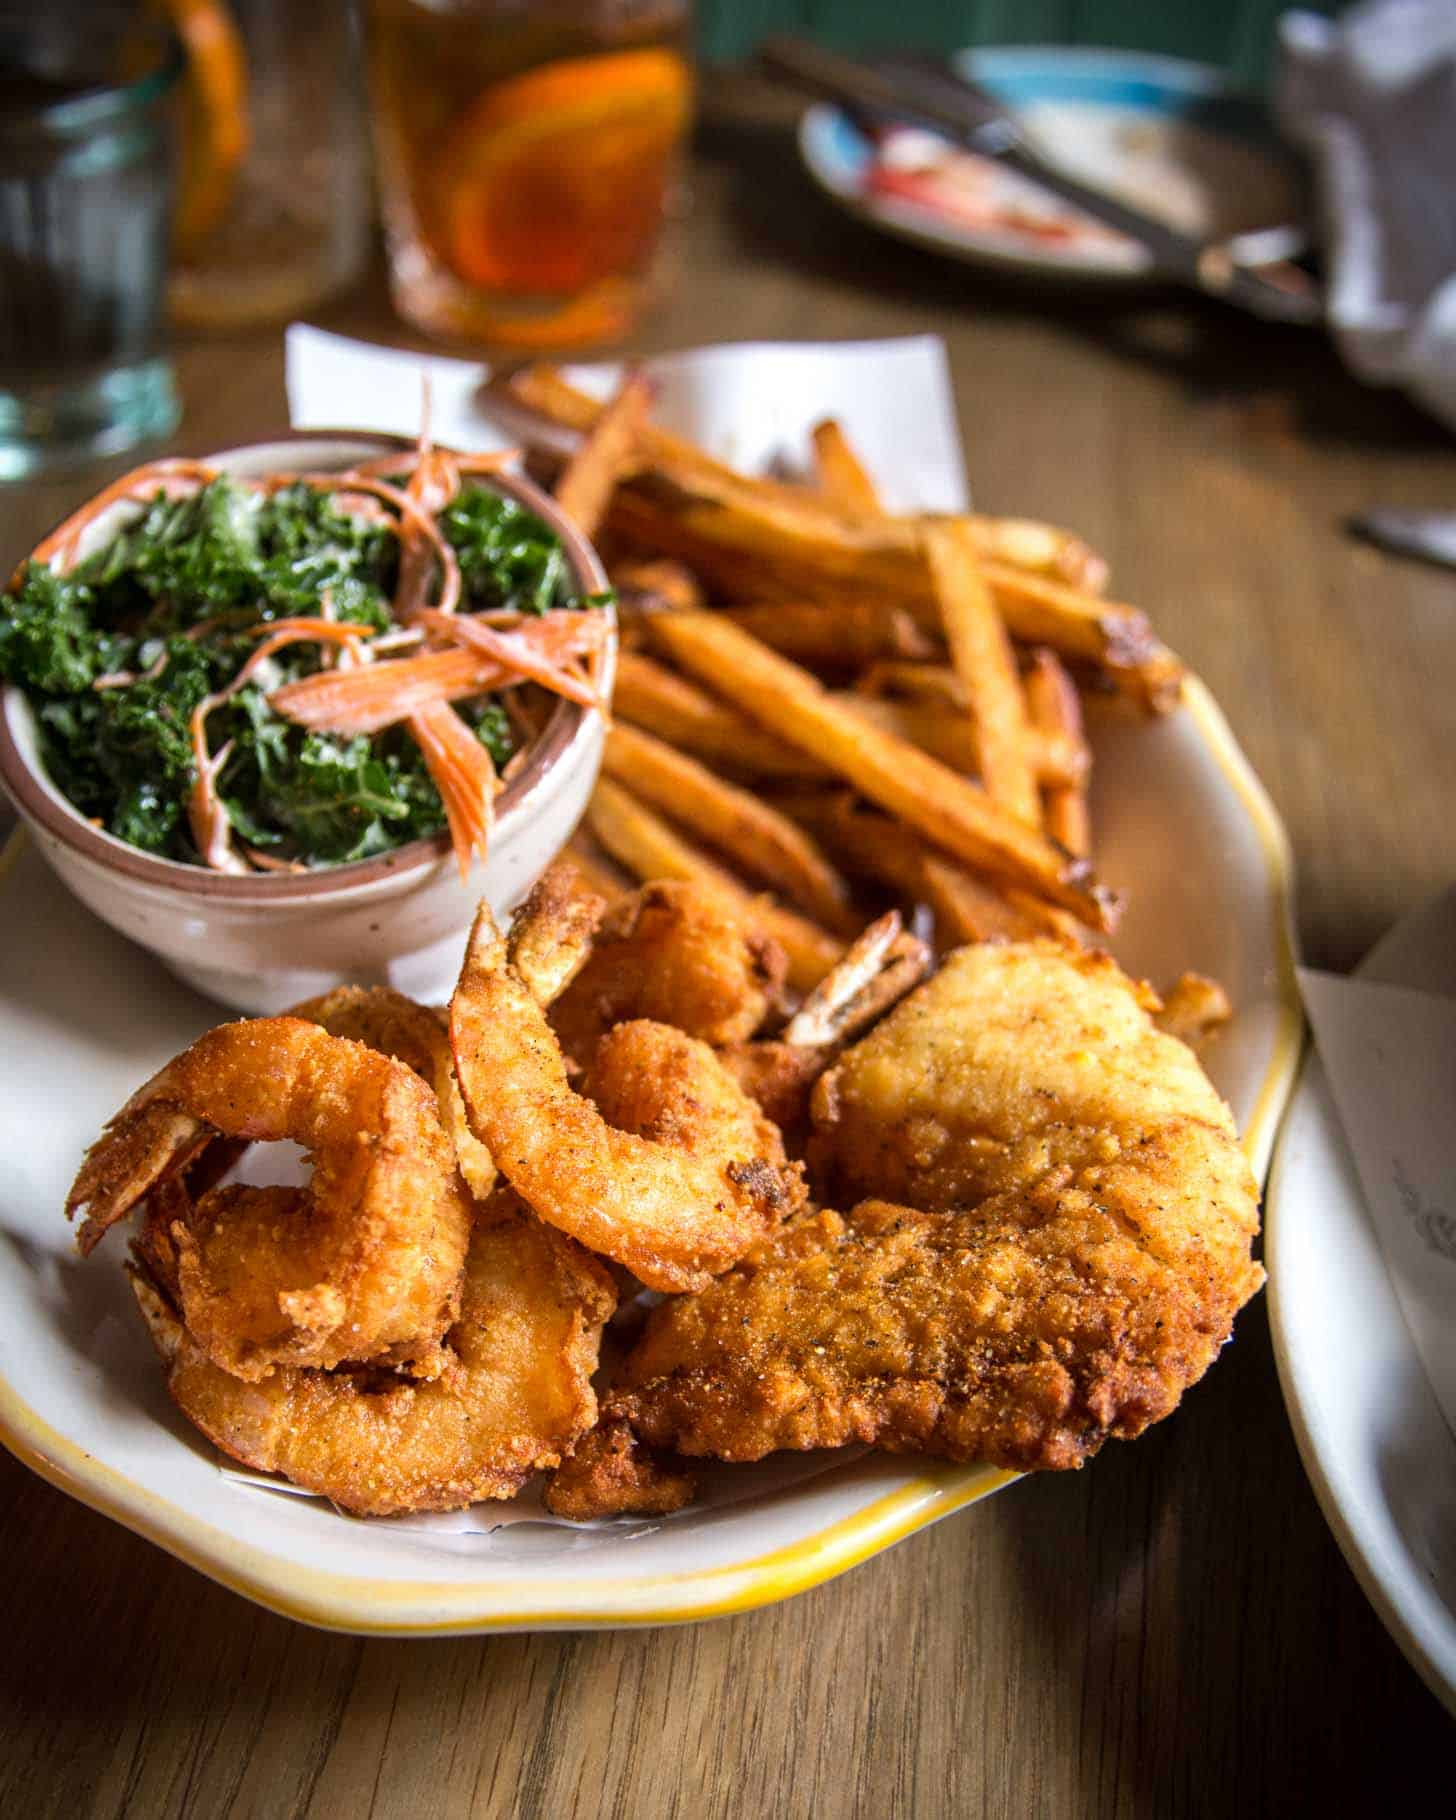 a plate of shrimp and fries